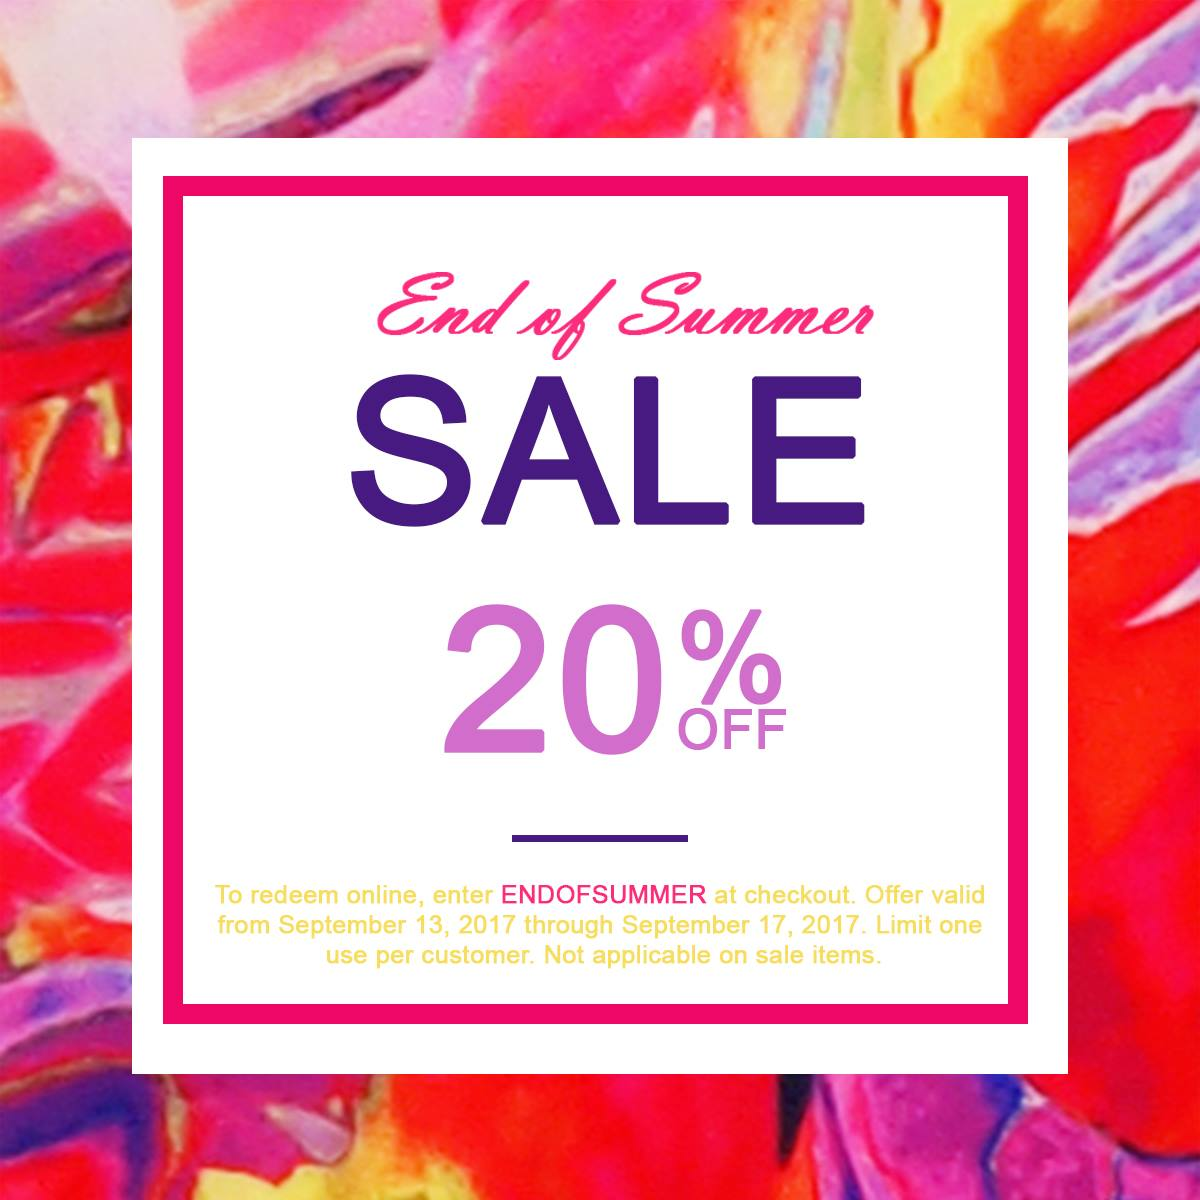 Shahida Parides is having an end of summer sale, which includes a 20% off all regular priced items.